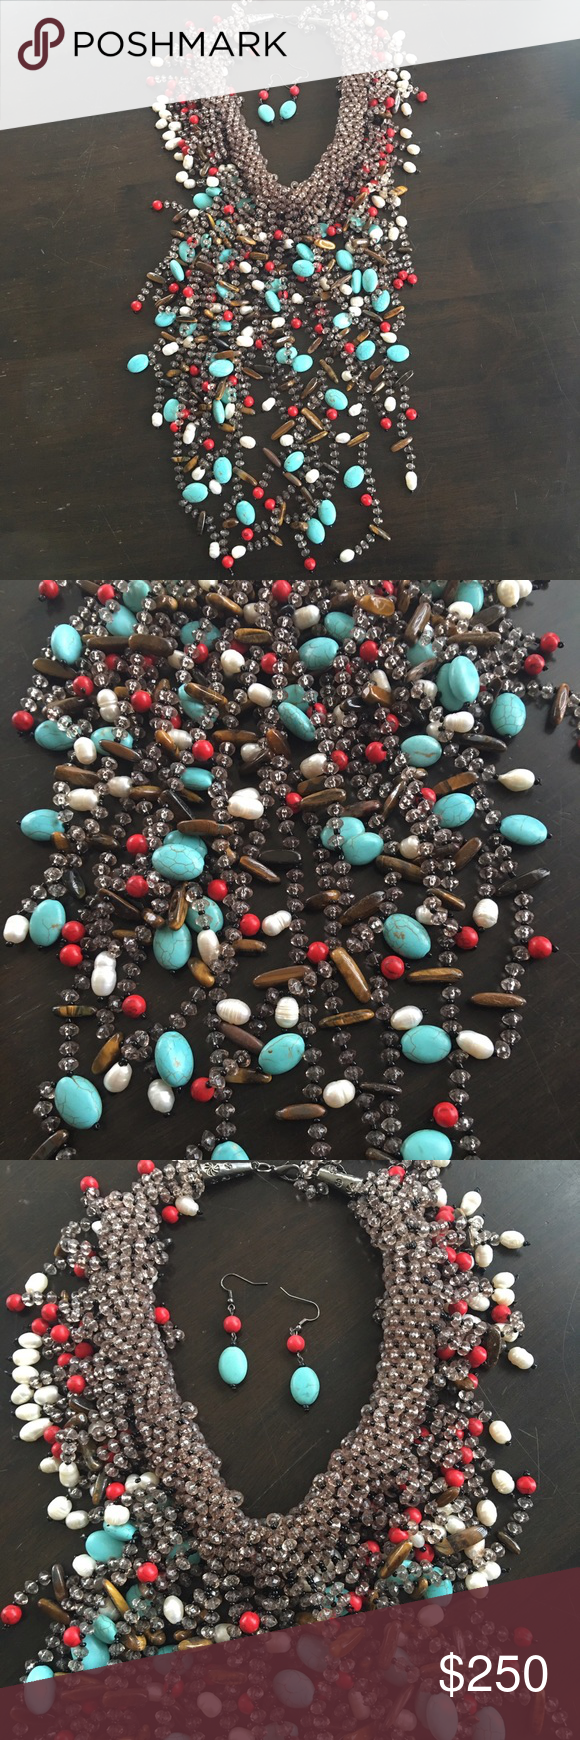 Absolutely Gorgeous Necklace with Earrings I hate to part with this stunning piece but I just don't wear it.  Gorgeous statement necklace with matching earrings.  Worn twice, it is in perfect condition, no missing beads.  Highest of quality! Jewelry Necklaces